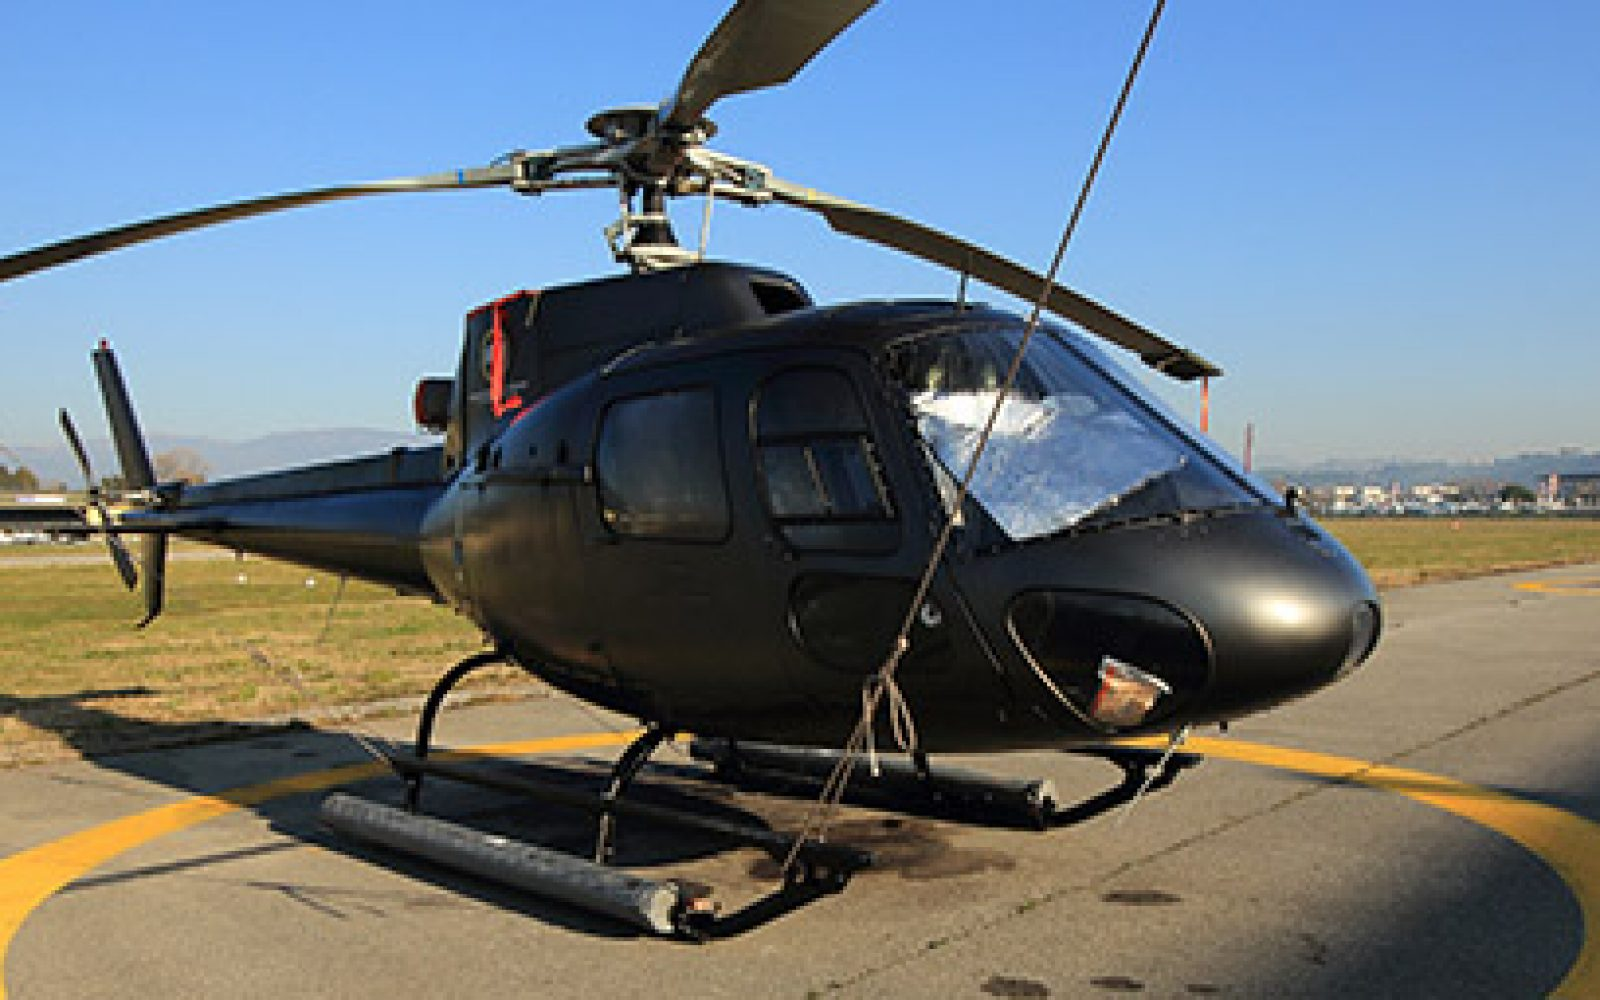 Black Private Helicopter